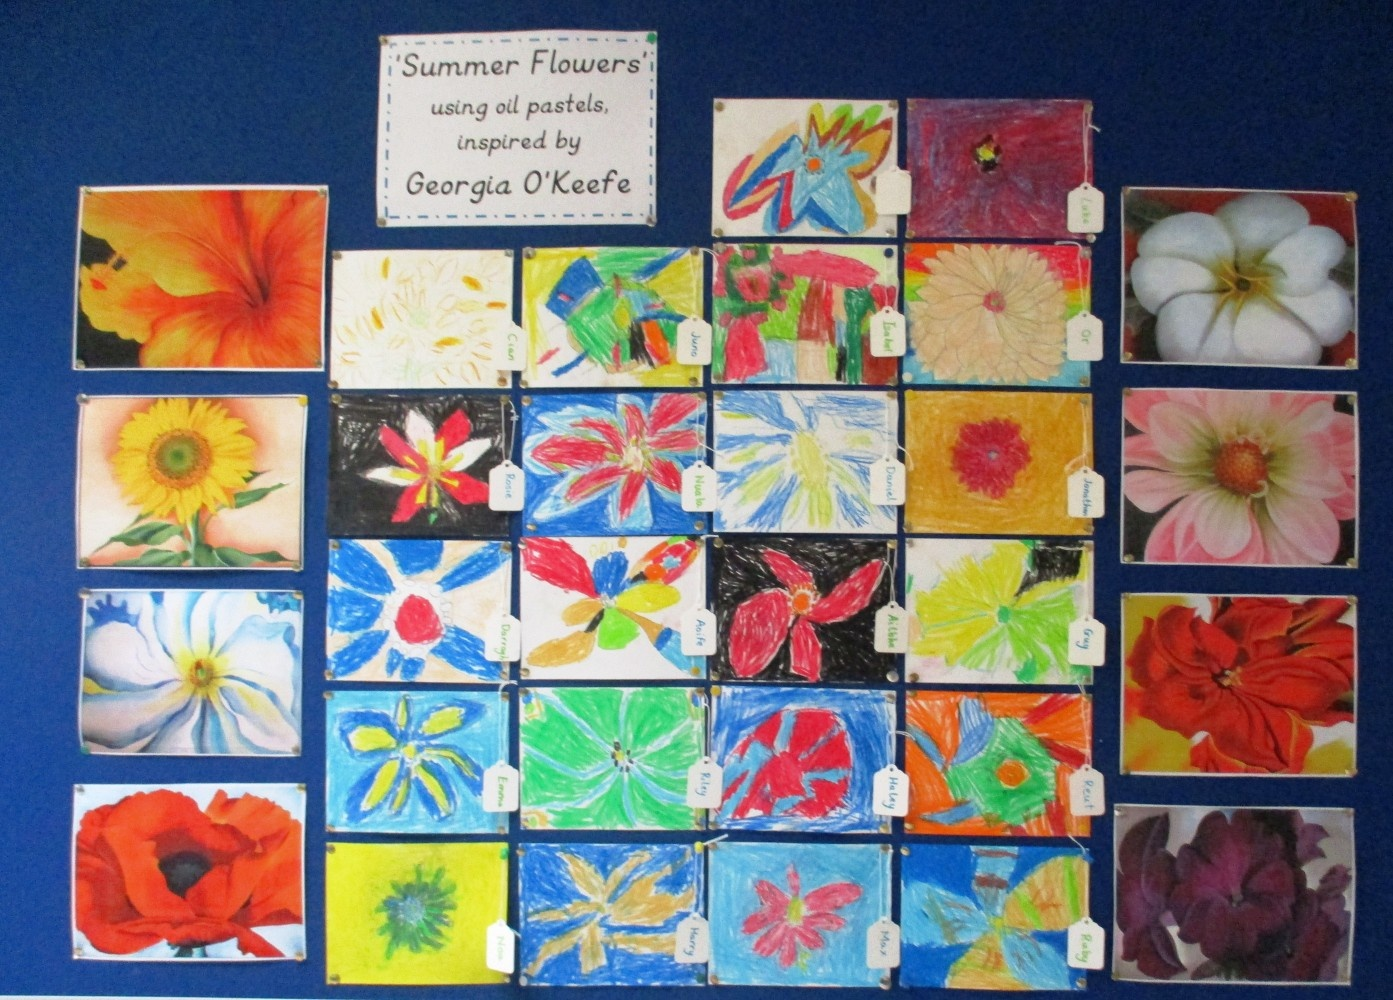 'Summer Flowers' using oil pastels, inspired by Georgia O'Keefe